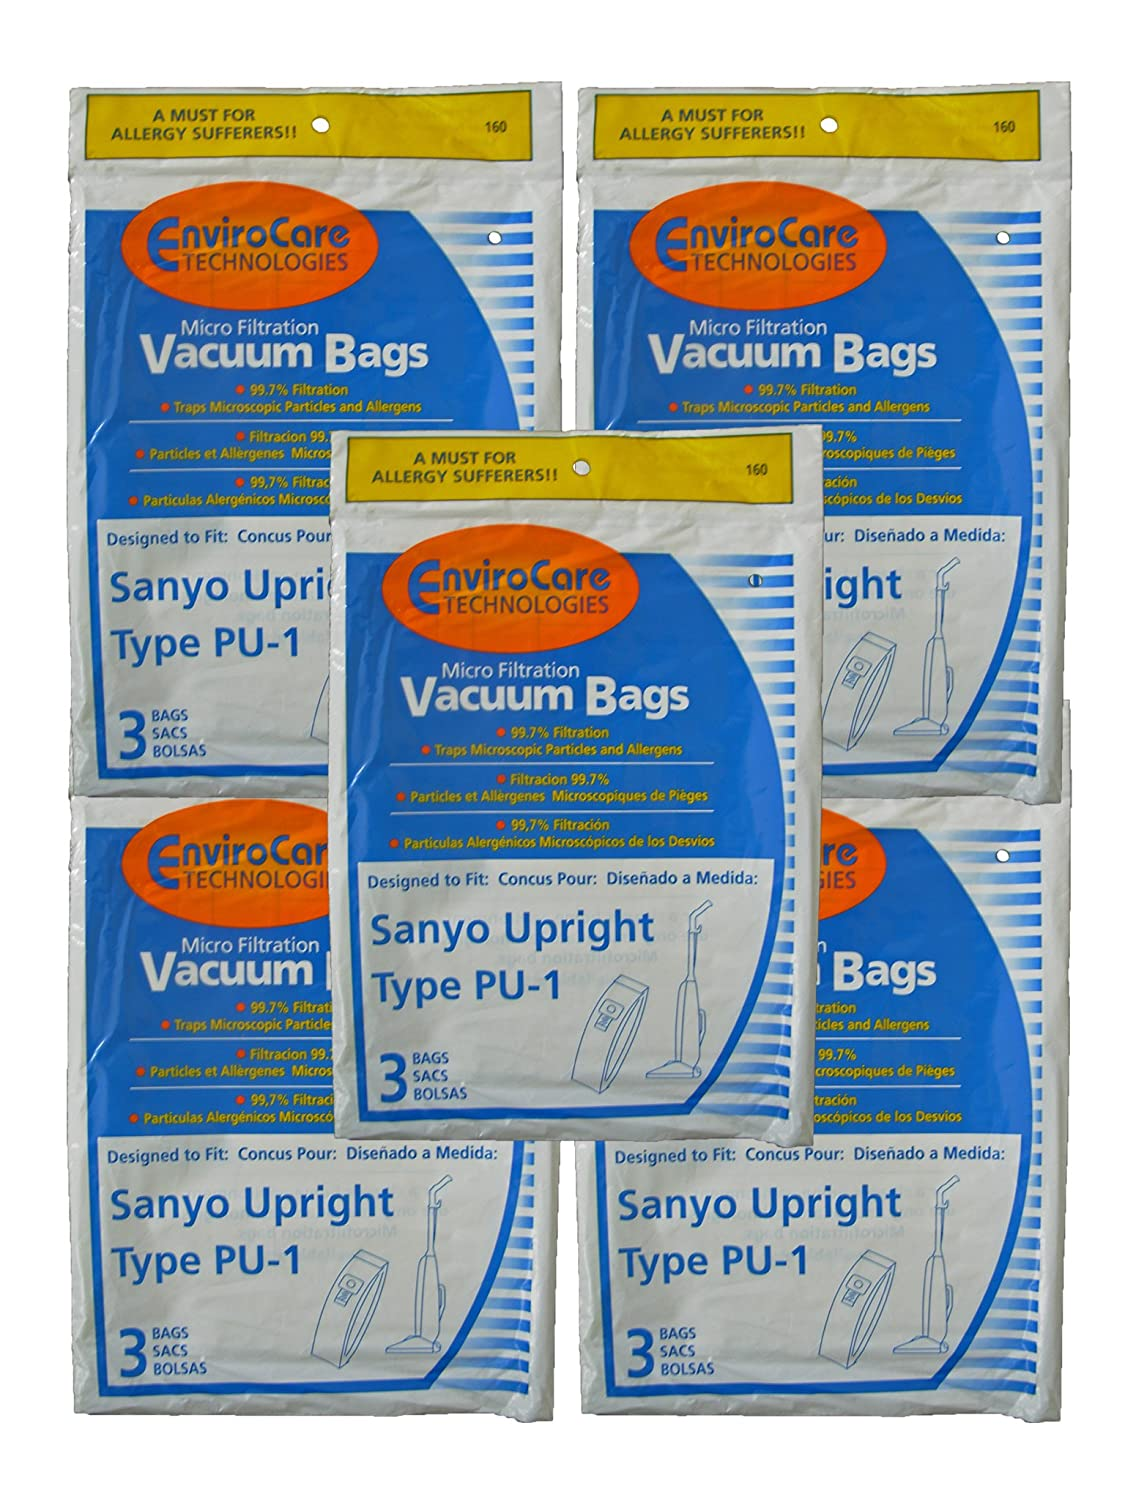 Amazon.com: 15 Sanyo Upright Pu-1 Vacuum Bags, Panasonic ...